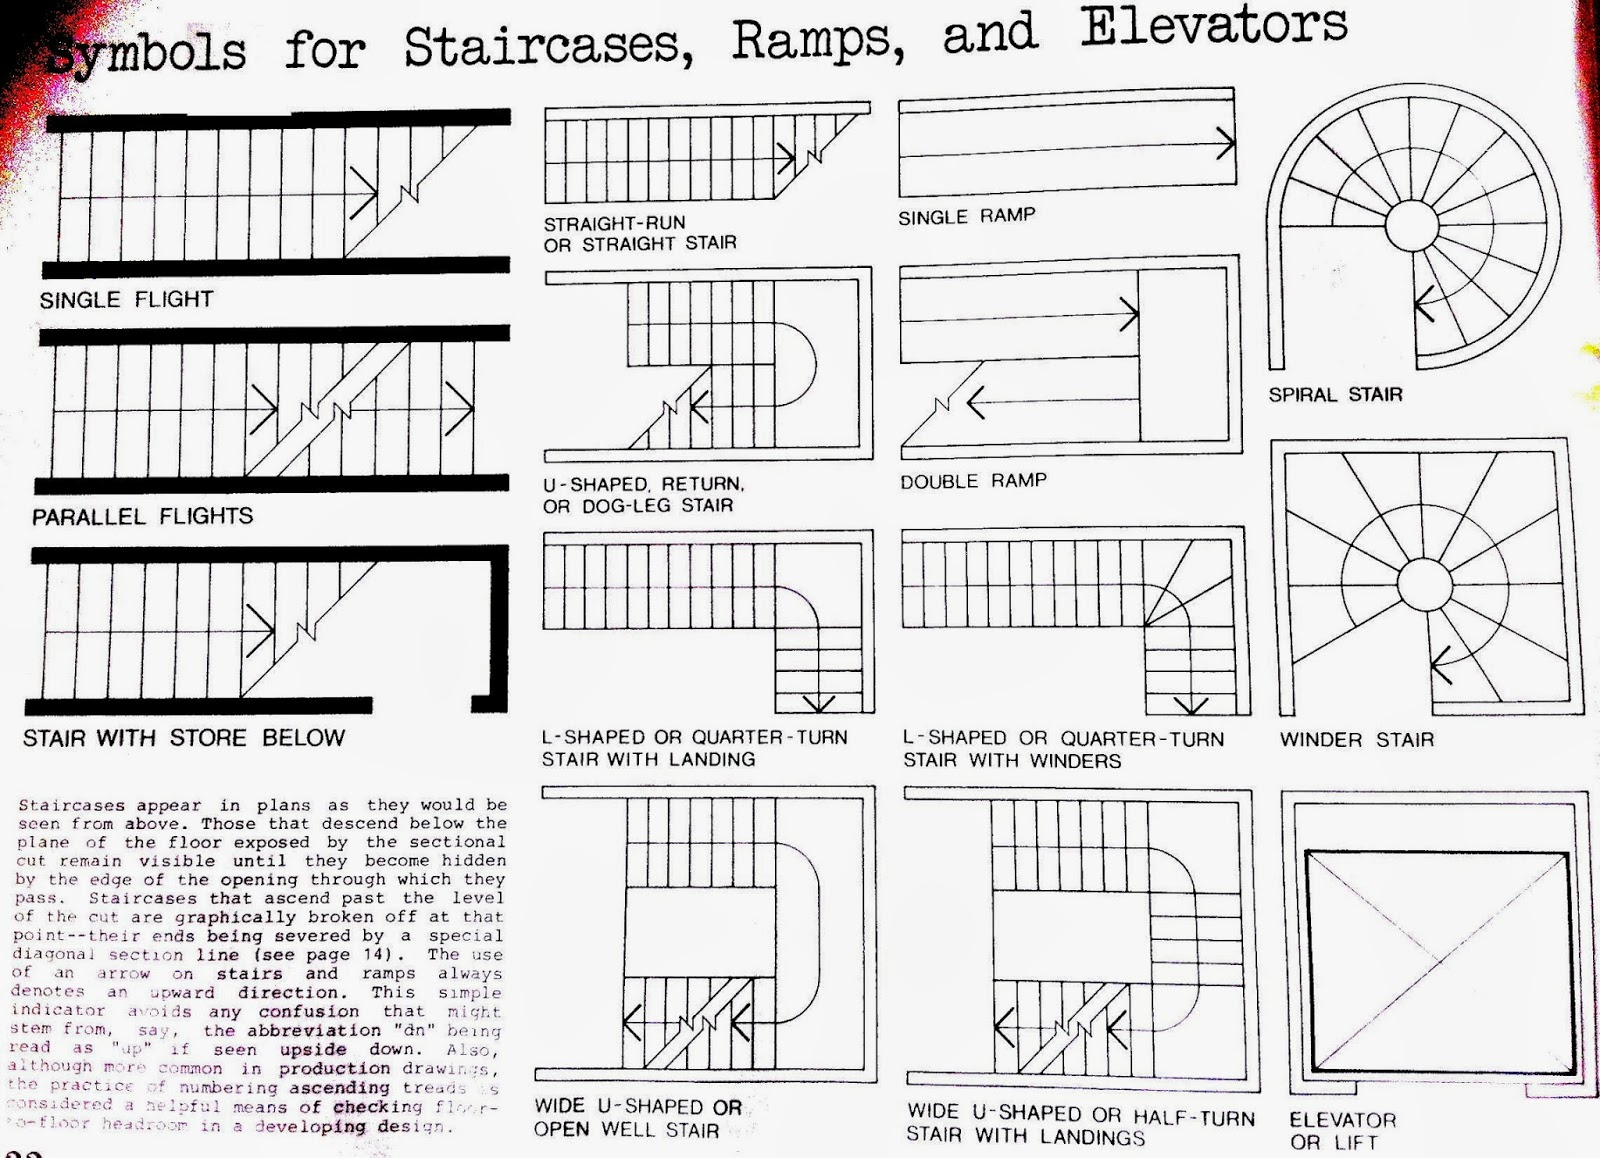 ARCHITECTURAL EXPRESSION IE 2013-2014: SOME TIPS THAT WILL